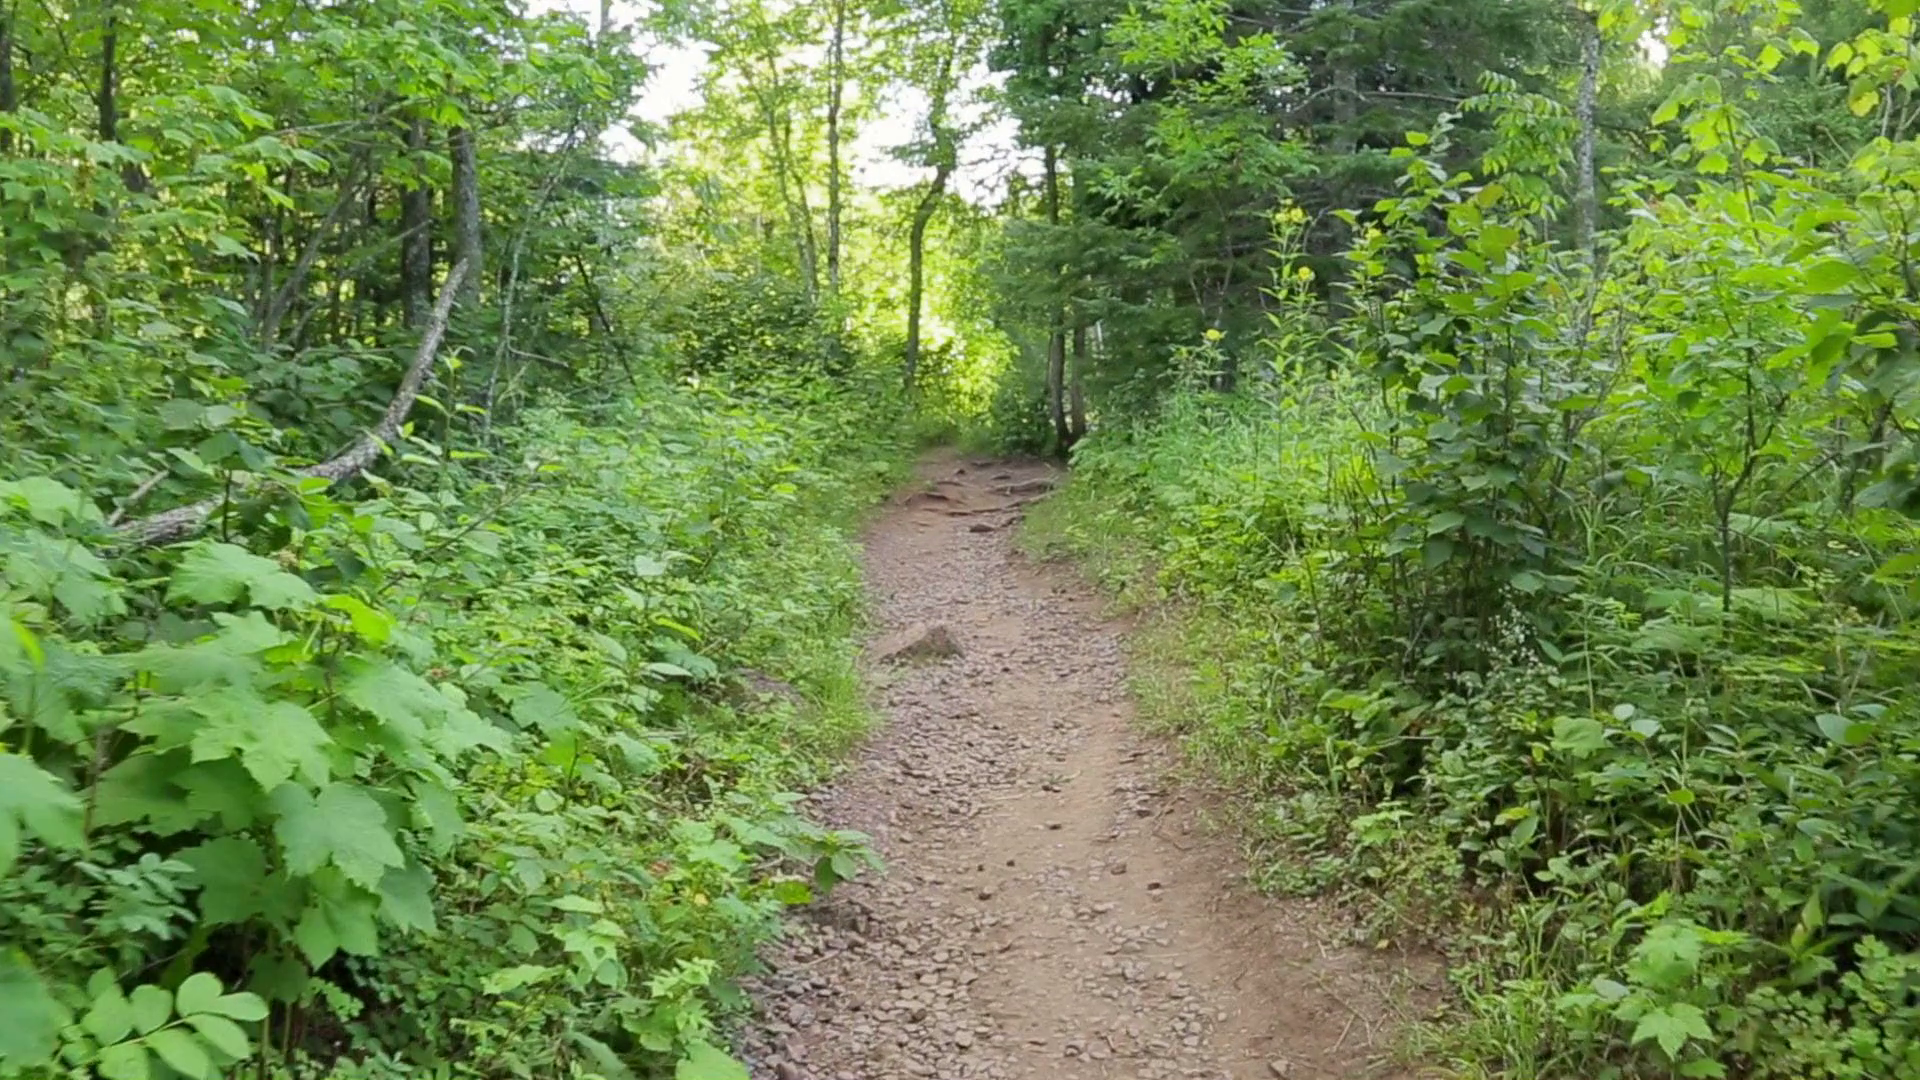 smooth-pov-shot-in-the-woods-perspective-of-walking-a-path-through-forest-with-trees-and-plants-filmed-in-northern-minnesota_bzdhd6c8l_thumbnail-full01.png